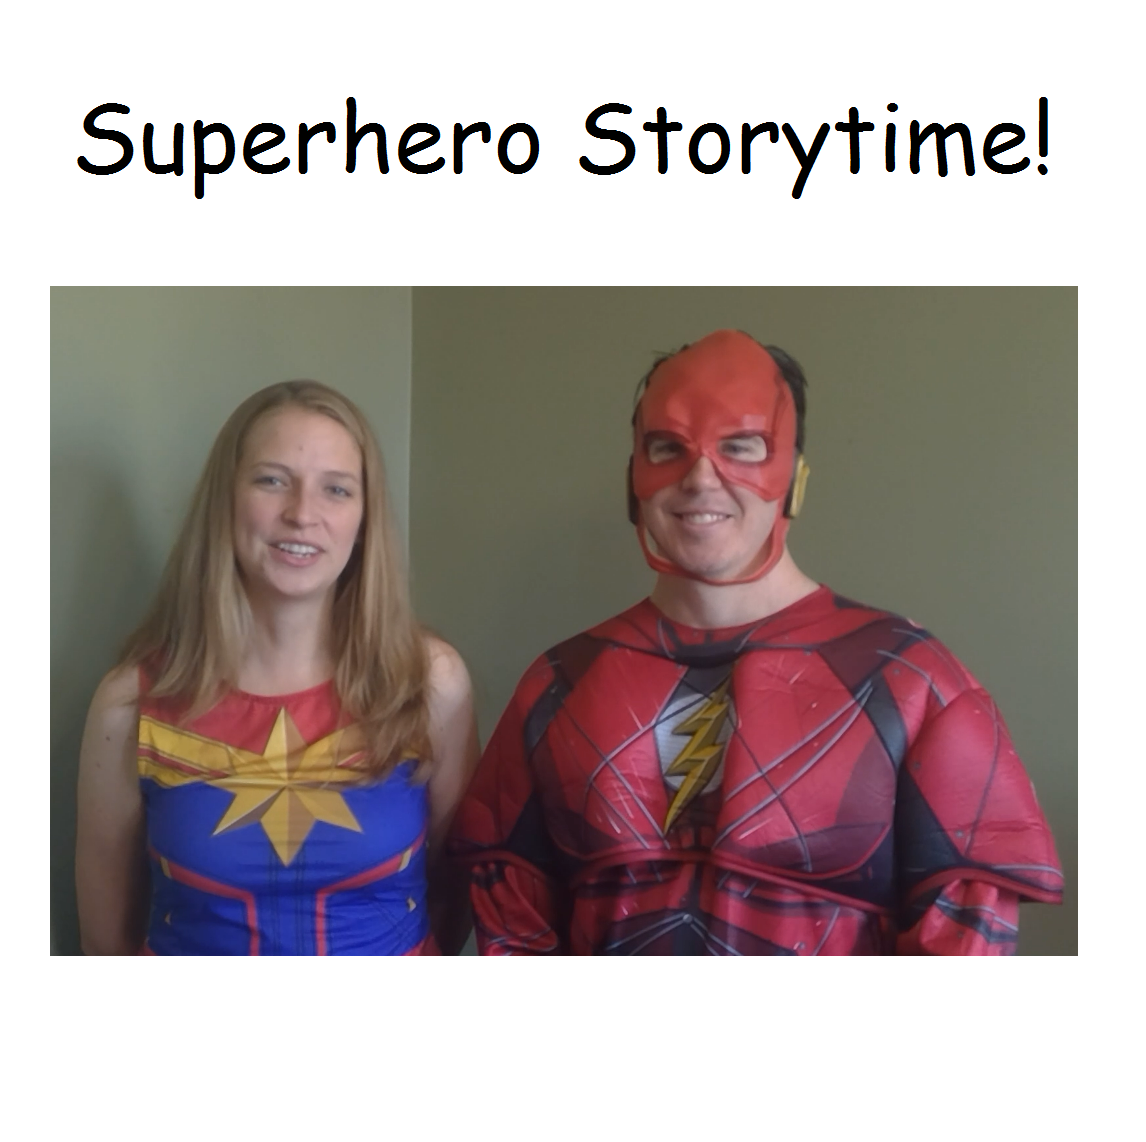 Woman and Man dressed as super heros